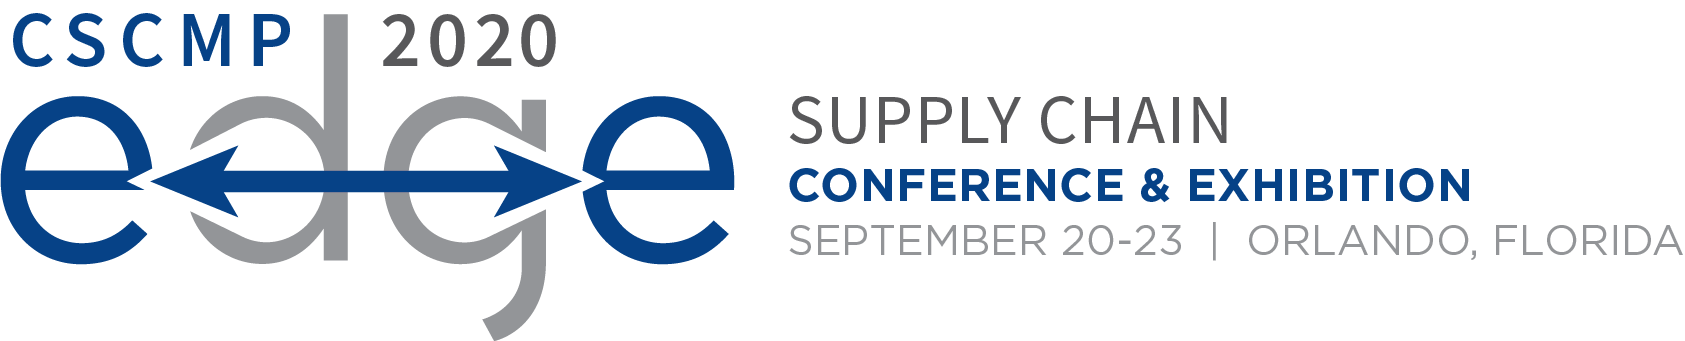 CSCMP EDGE 2020 Supply Chain Conference and Exhibition